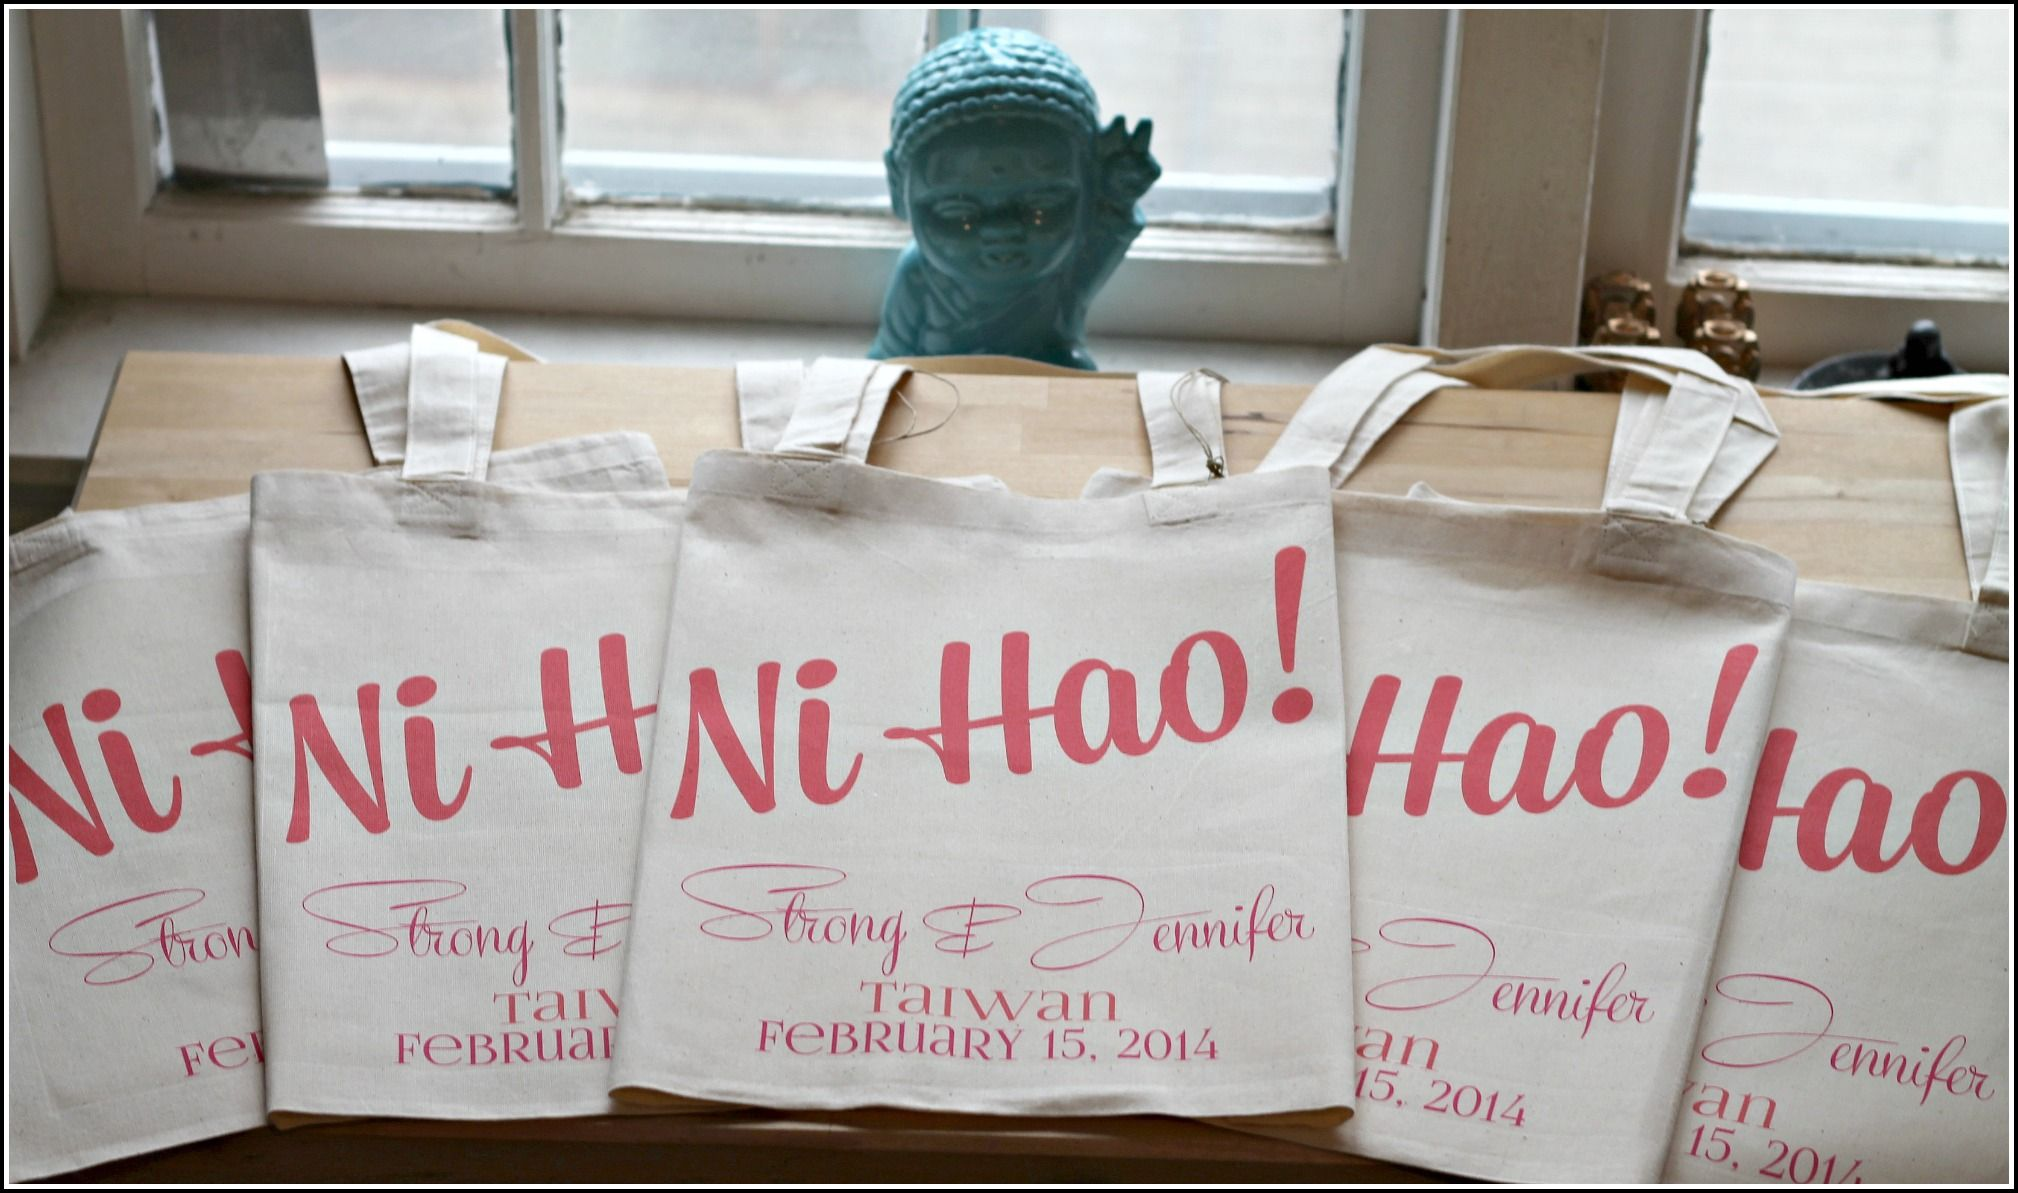 Hello in any language personalized welcome tote via ilu.lily designs on Etsy #destinationwedding #wedding